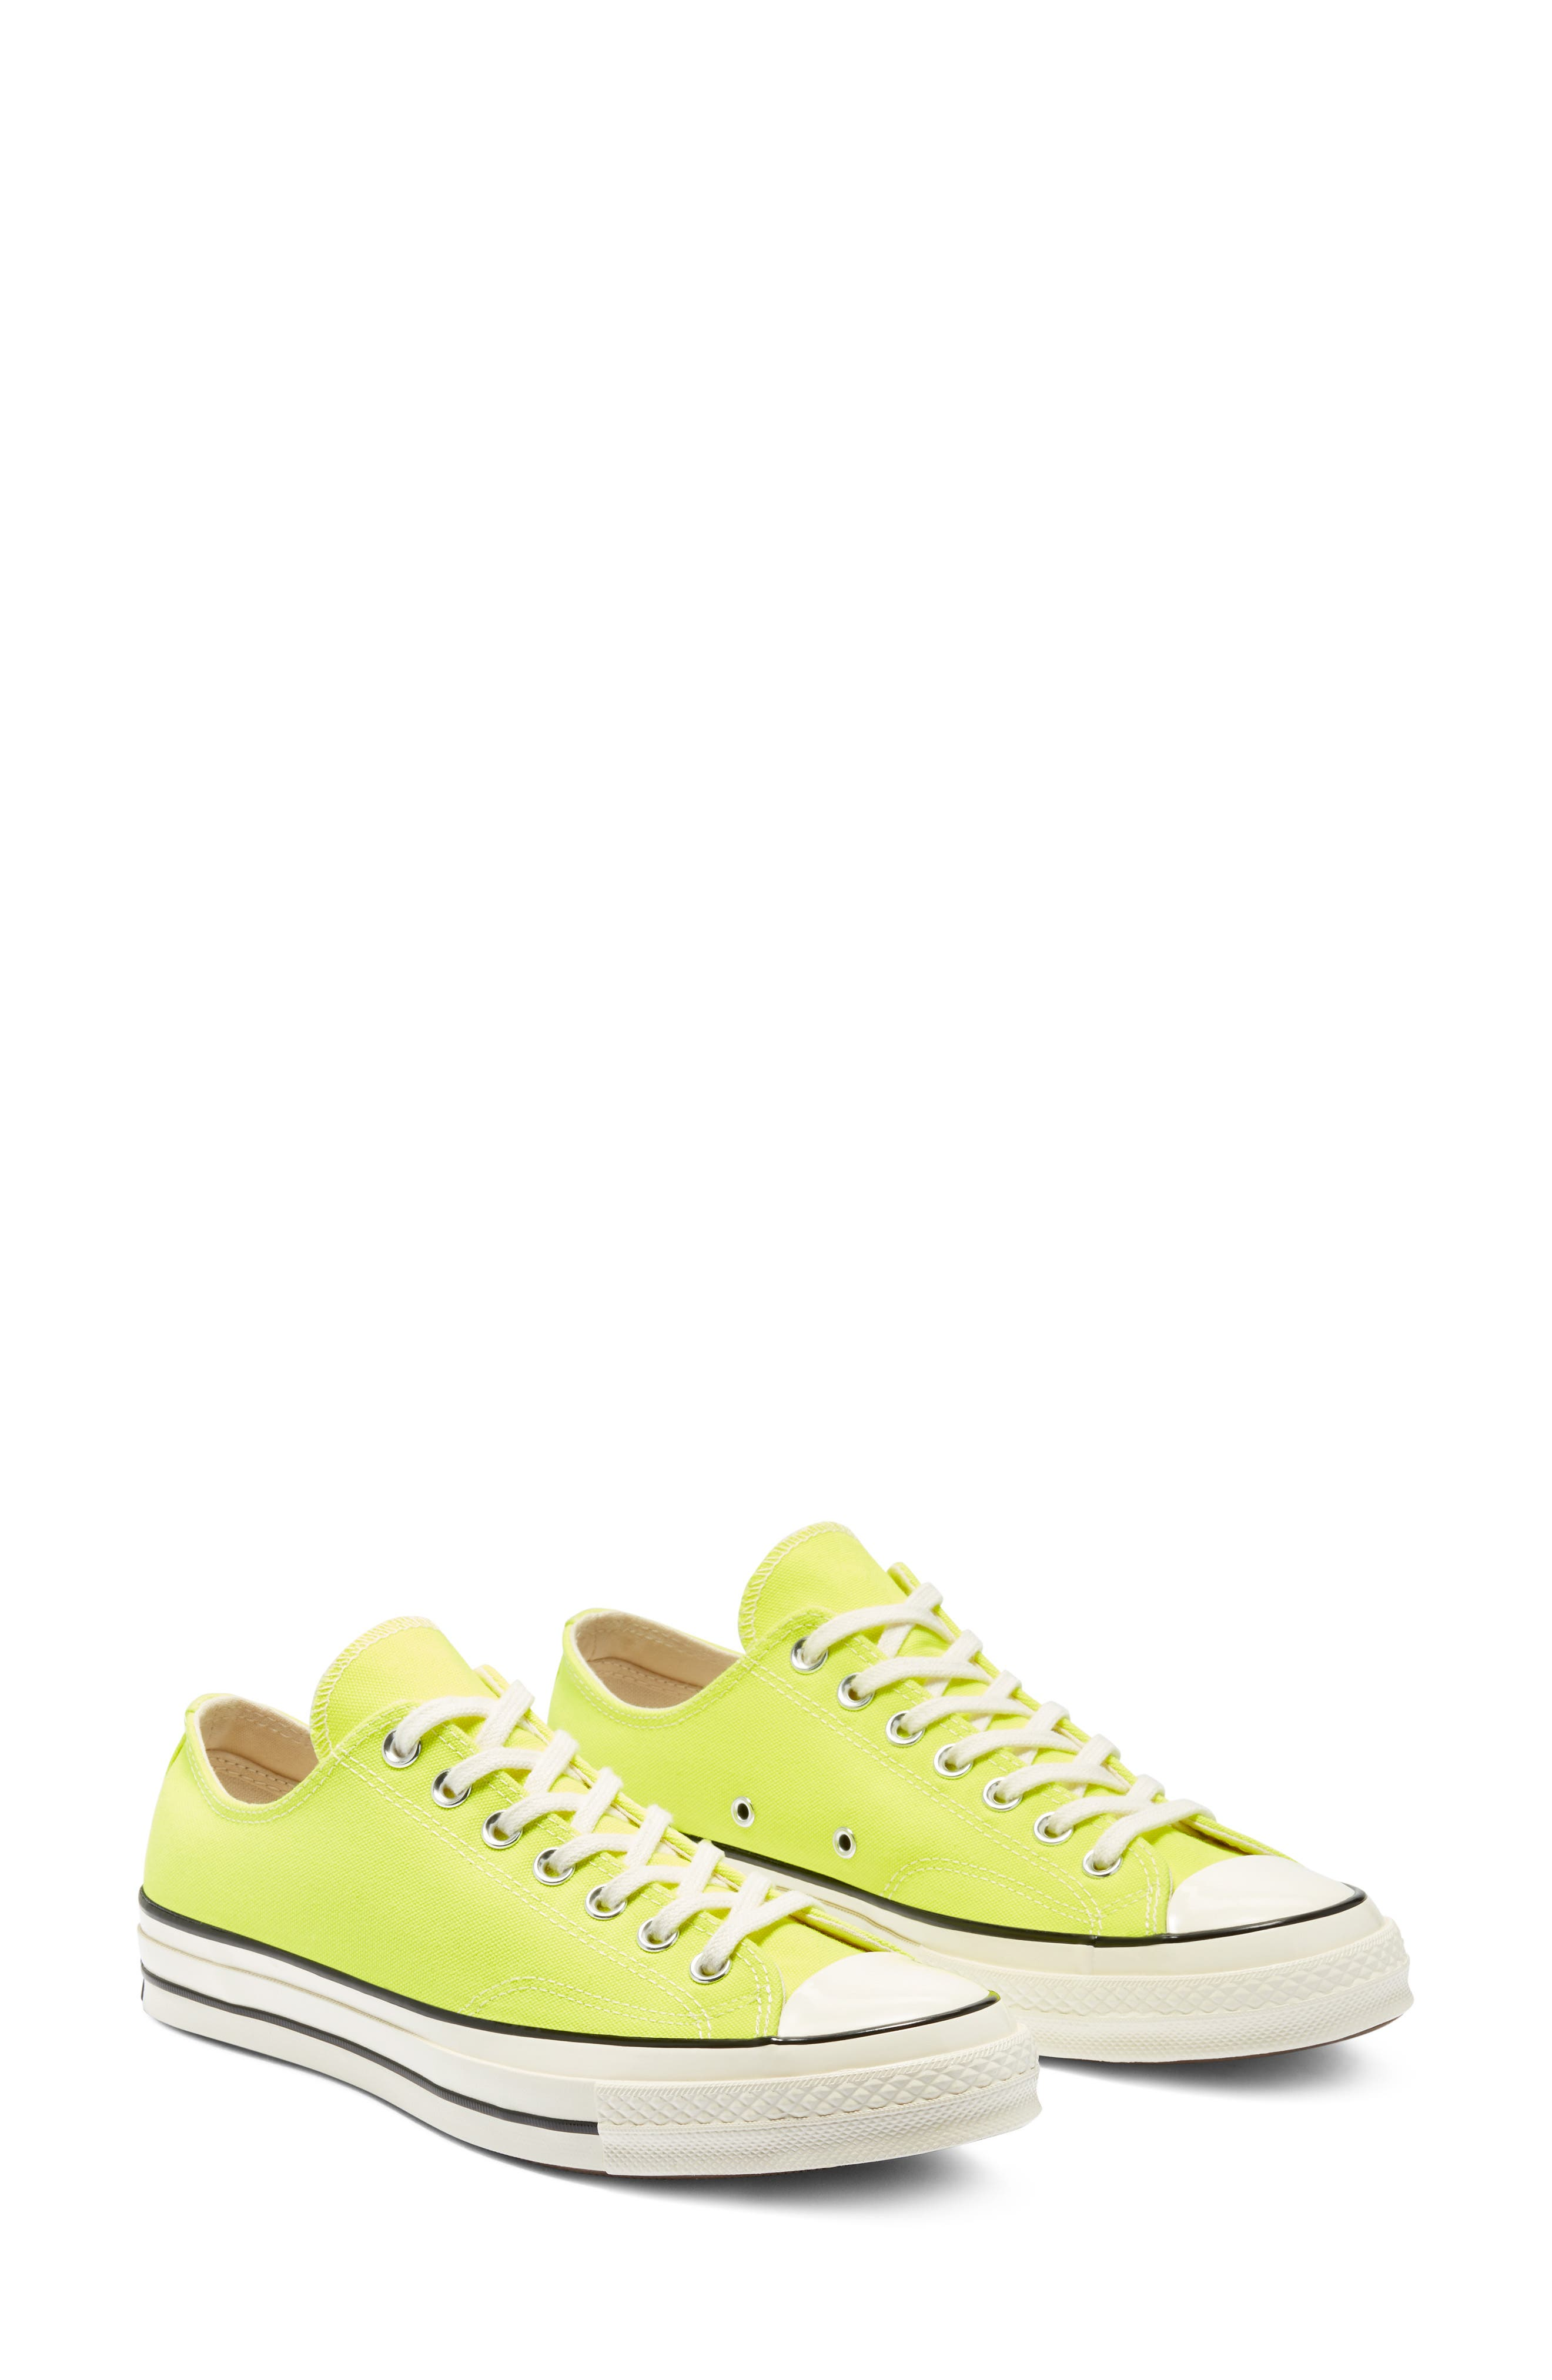 Women's Yellow Converse Shoes | Nordstrom